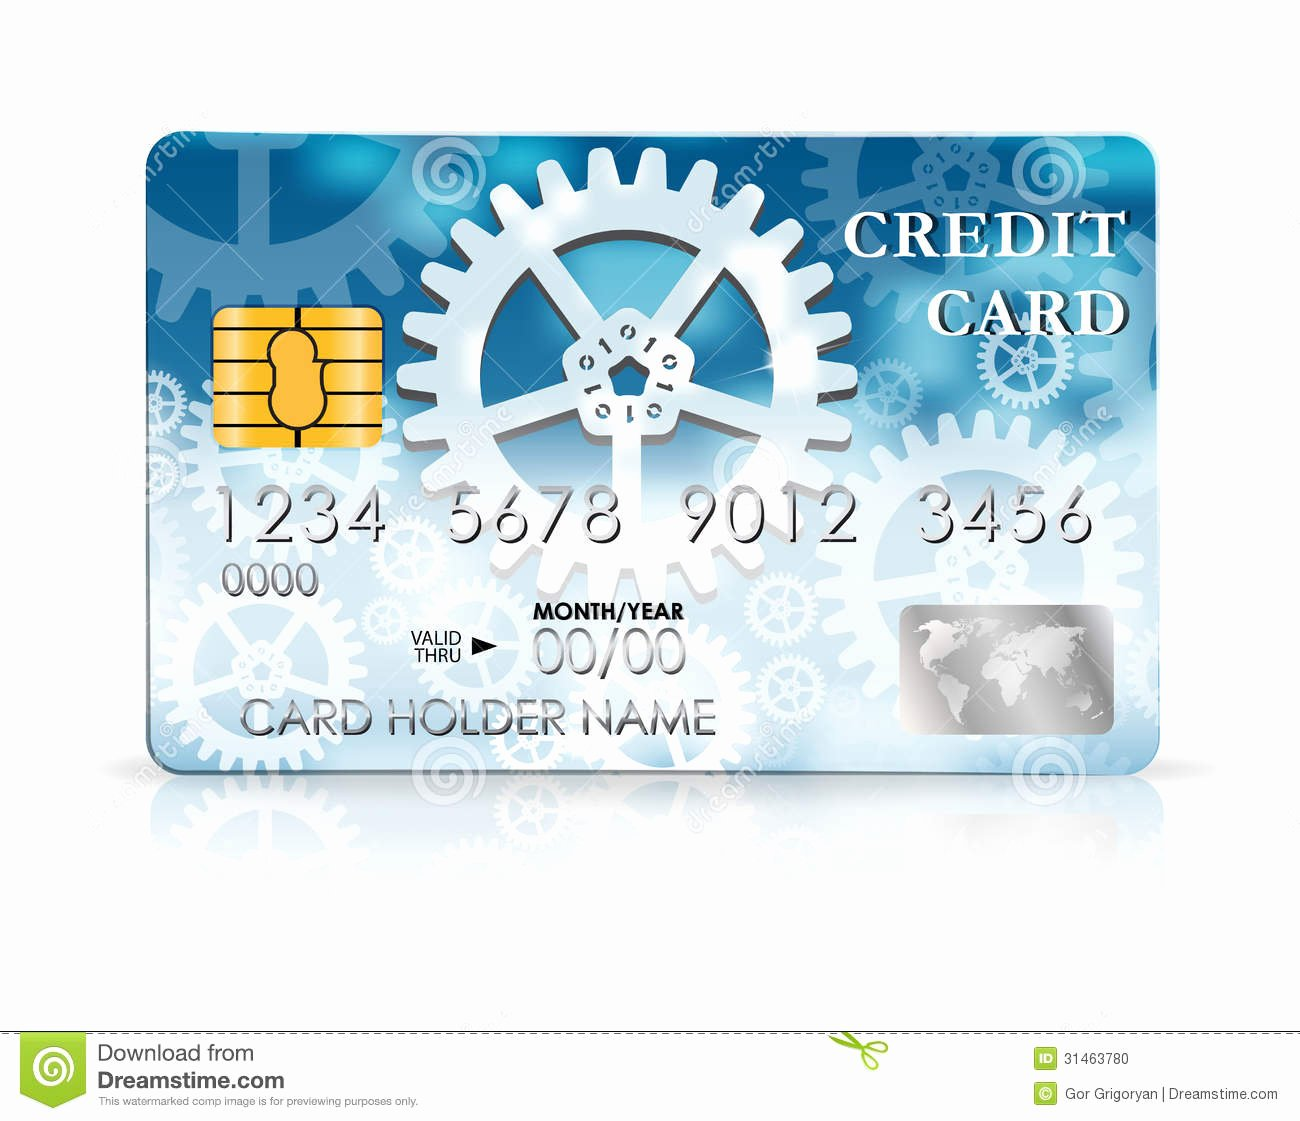 Credit Card Design Template Luxury Credit Card Design Template Stock Image